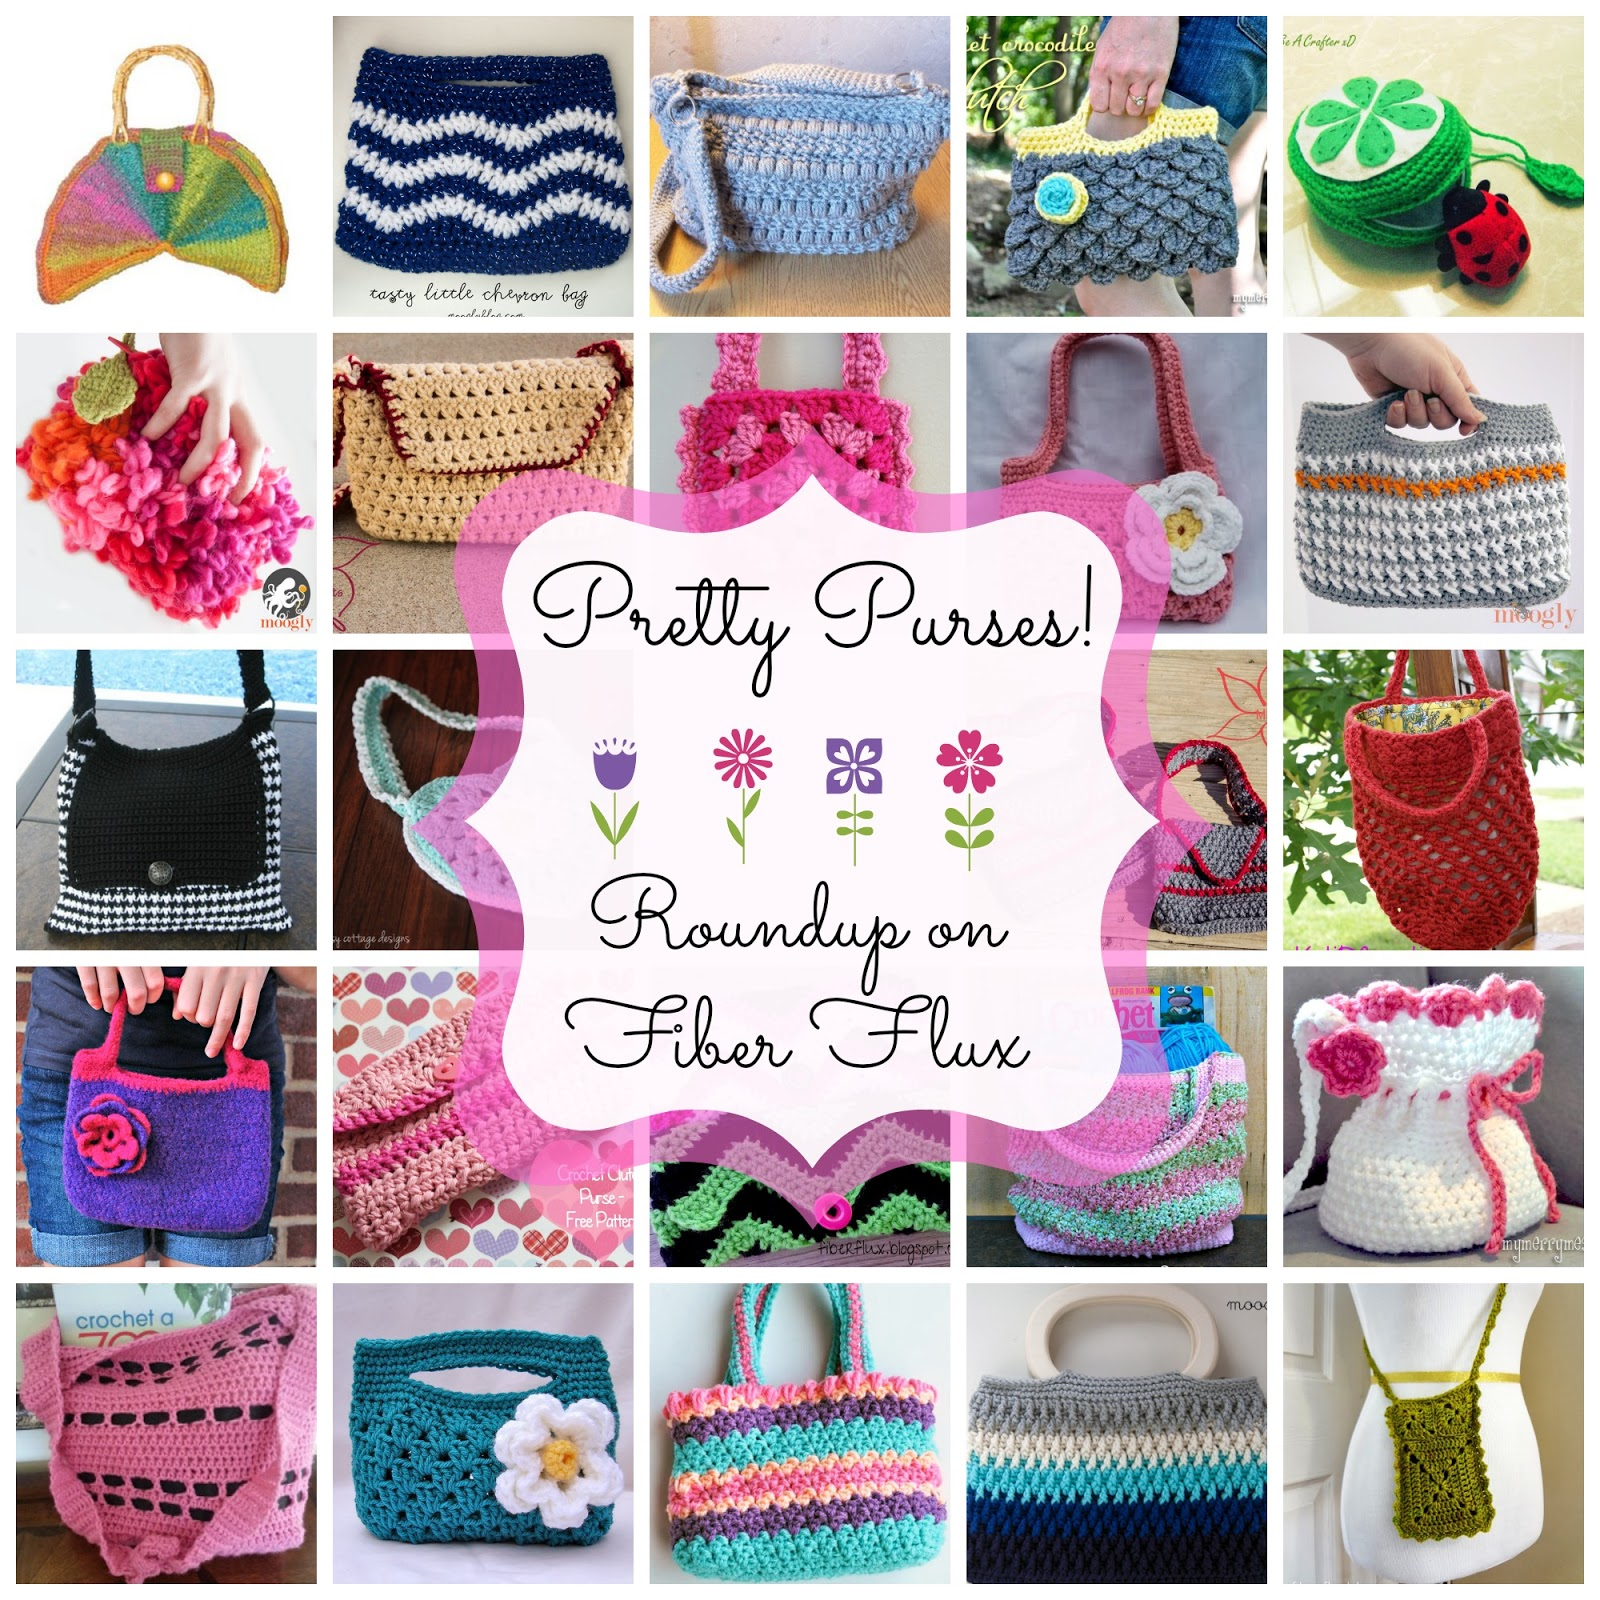 Fiber flux pretty purses 20 free crochet purse patterns i love purses and you can never have too many in my opinion here are some purses ive collected just for you from large bags for toting everything bankloansurffo Gallery